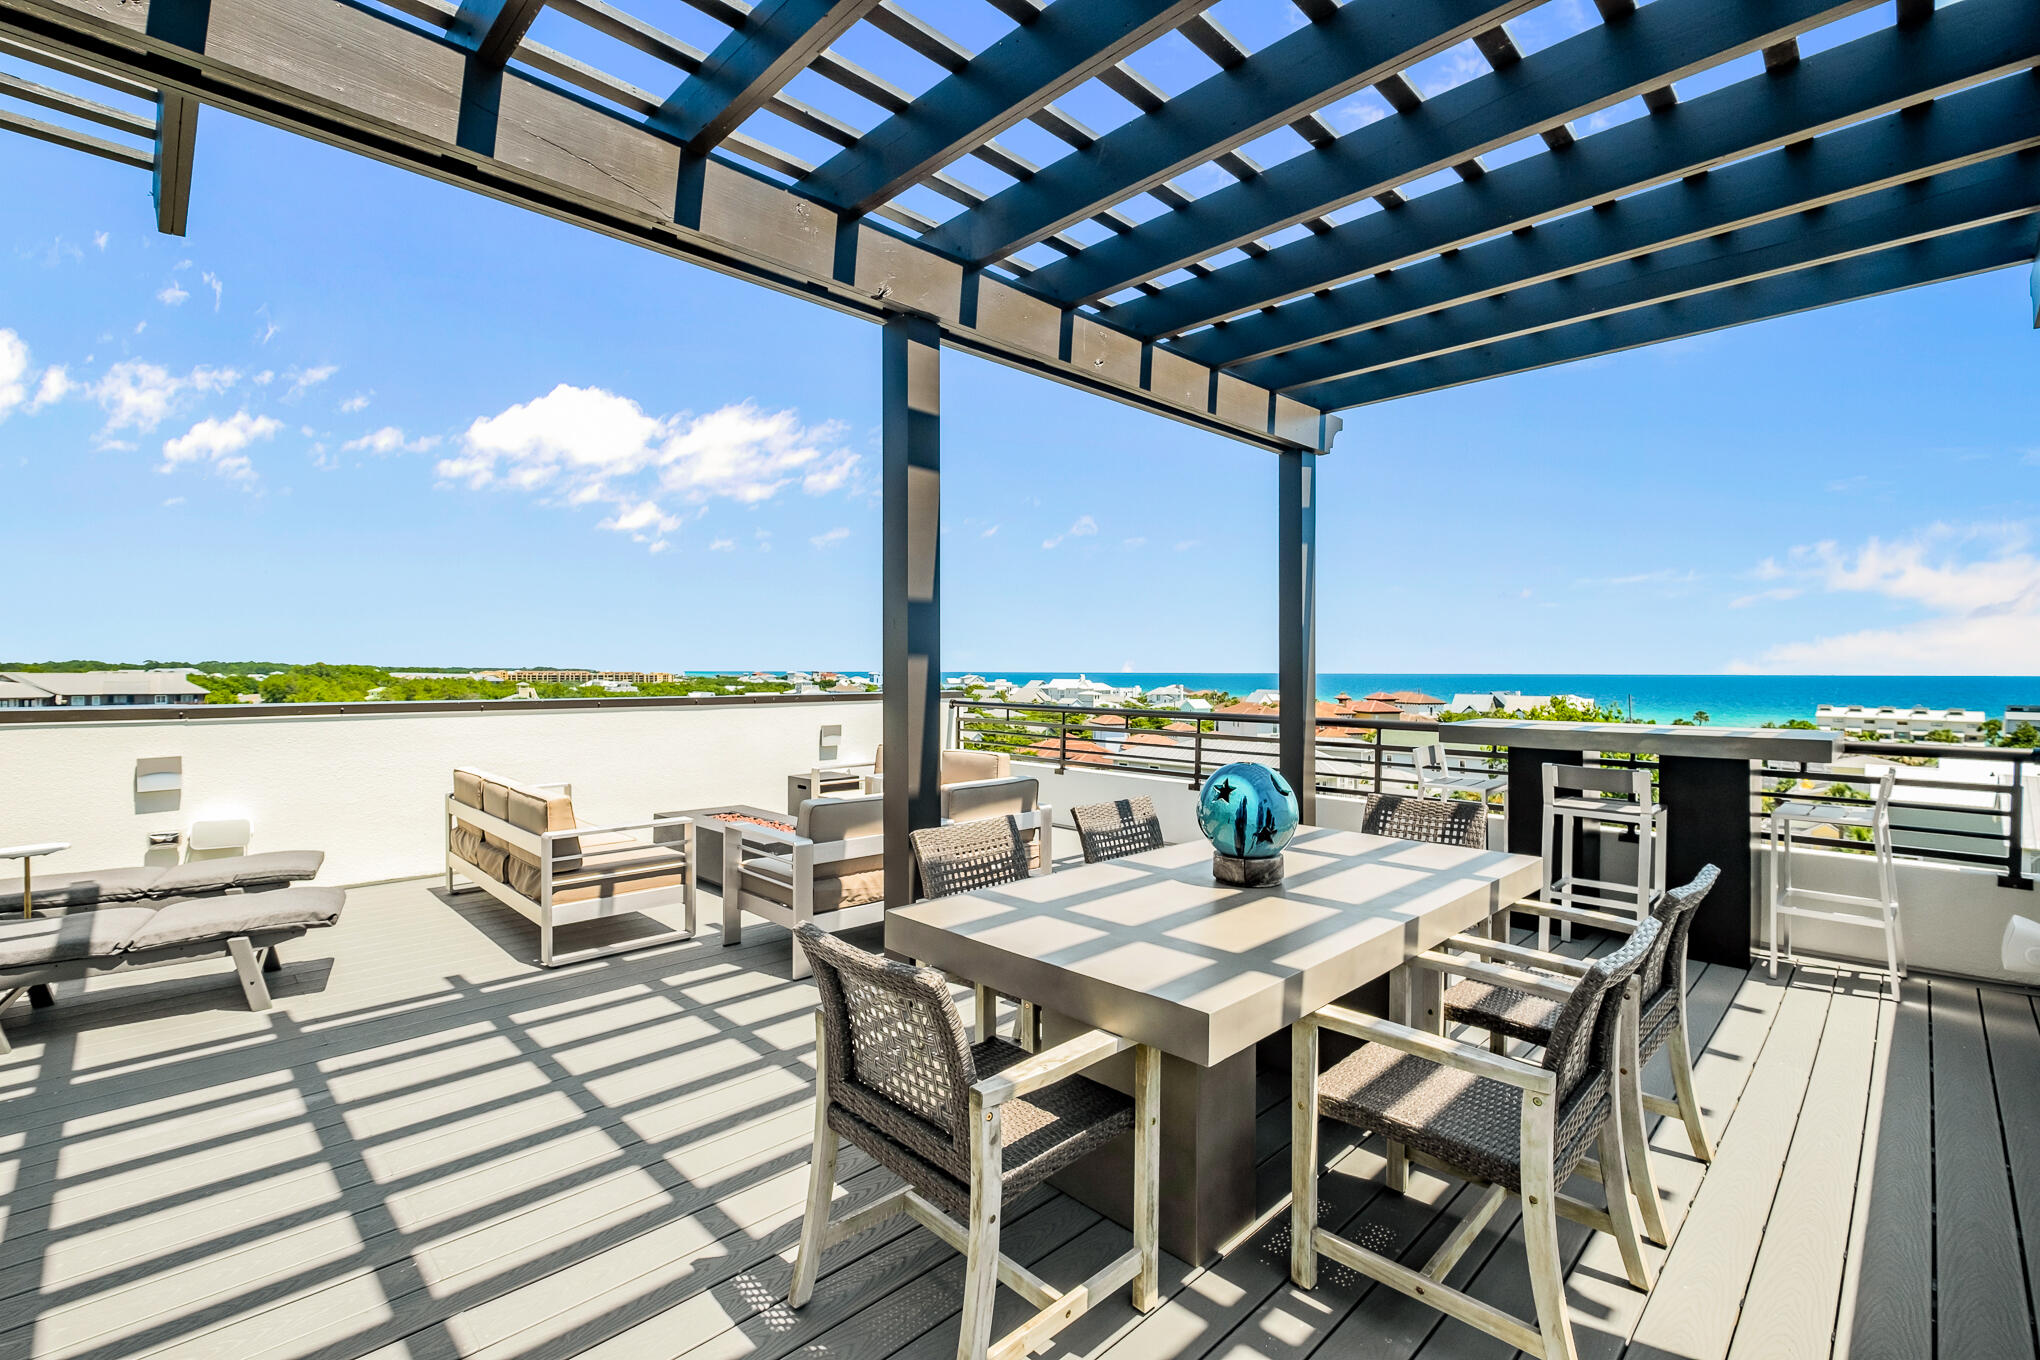 With sweeping views of the Gulf of Mexico from the Beaches of South Walton to Panama City Beach, this eastern end unit at THE CREST is simply breathtaking!  Arguably one of the highest and most panoramic views on Scenic Highway 30A, this home provides complete luxury and privacy in a gated community of nine residences.  Sold fully furnished with a few exclusions, this 3500 sq ft home boasts 5 bedrooms, 5 full baths, two half baths, two spacious living areas, 2 master bedrooms, and a private fenced backyard for family gatherings.  No detail was overlooked by the current owners.  The home has a private poolside cabana, golf cart garage, and golf cart. Enjoy the 40x60 heated community pool and hot tub after your day at the beach.  Call today to schedule your private showing of residence.